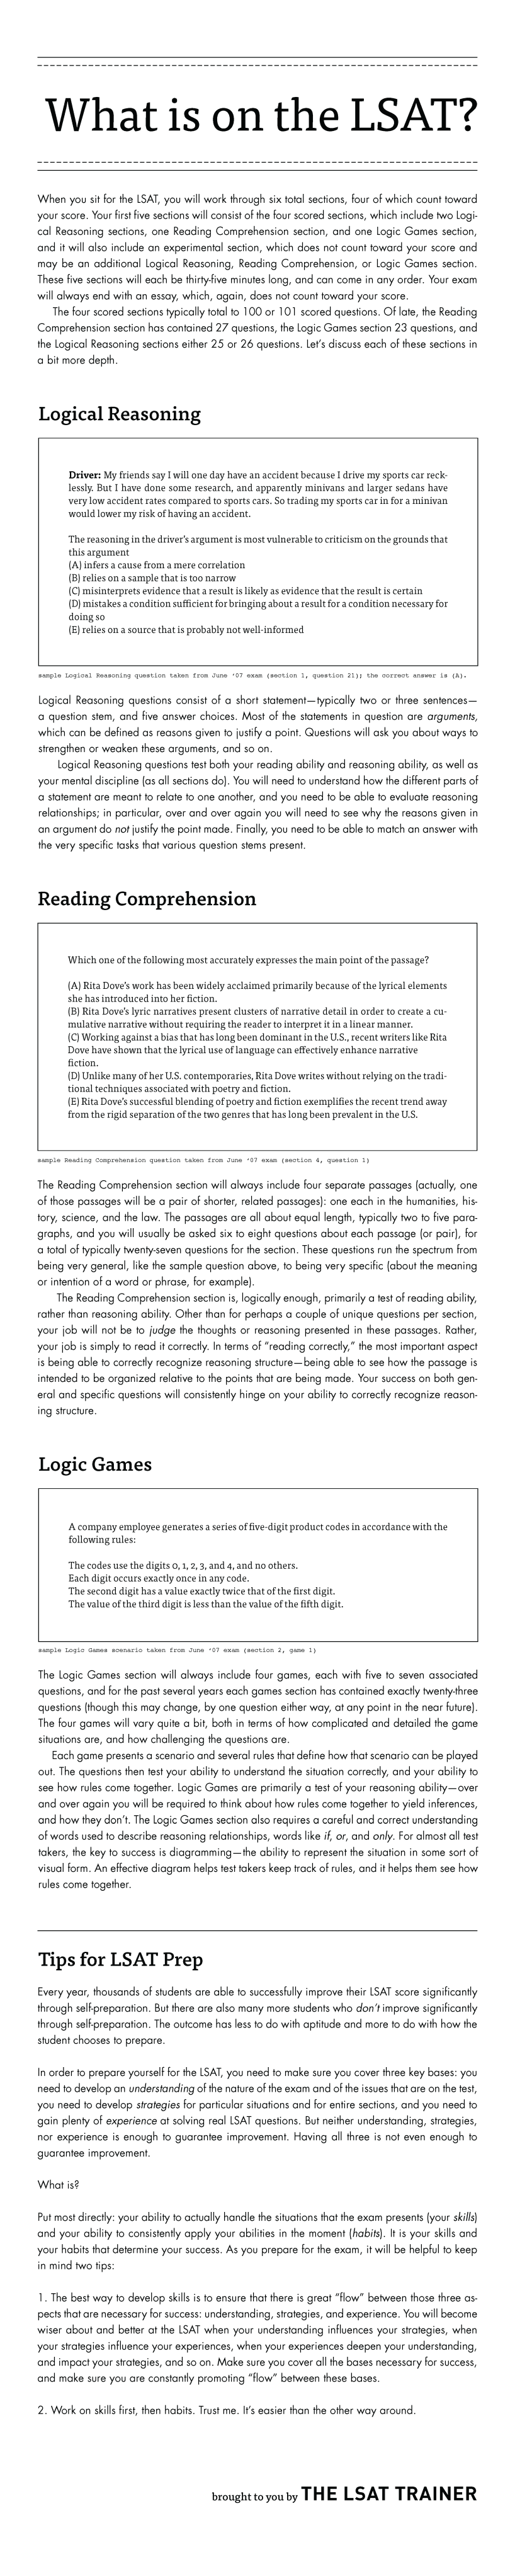 An infographic about what is on the LSAT logical